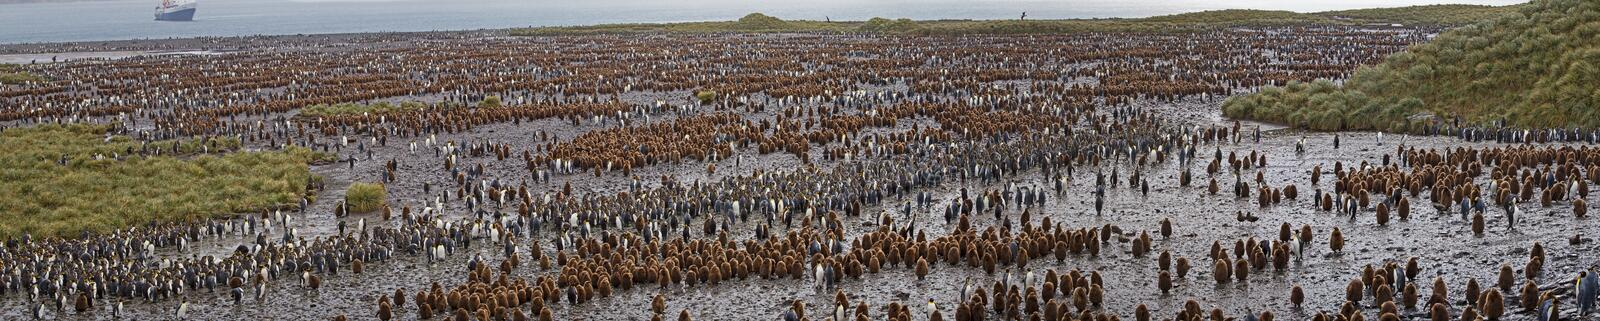 Panorama of king penguin colony on Salisbury Plains in South Georgia. royalty free stock photo